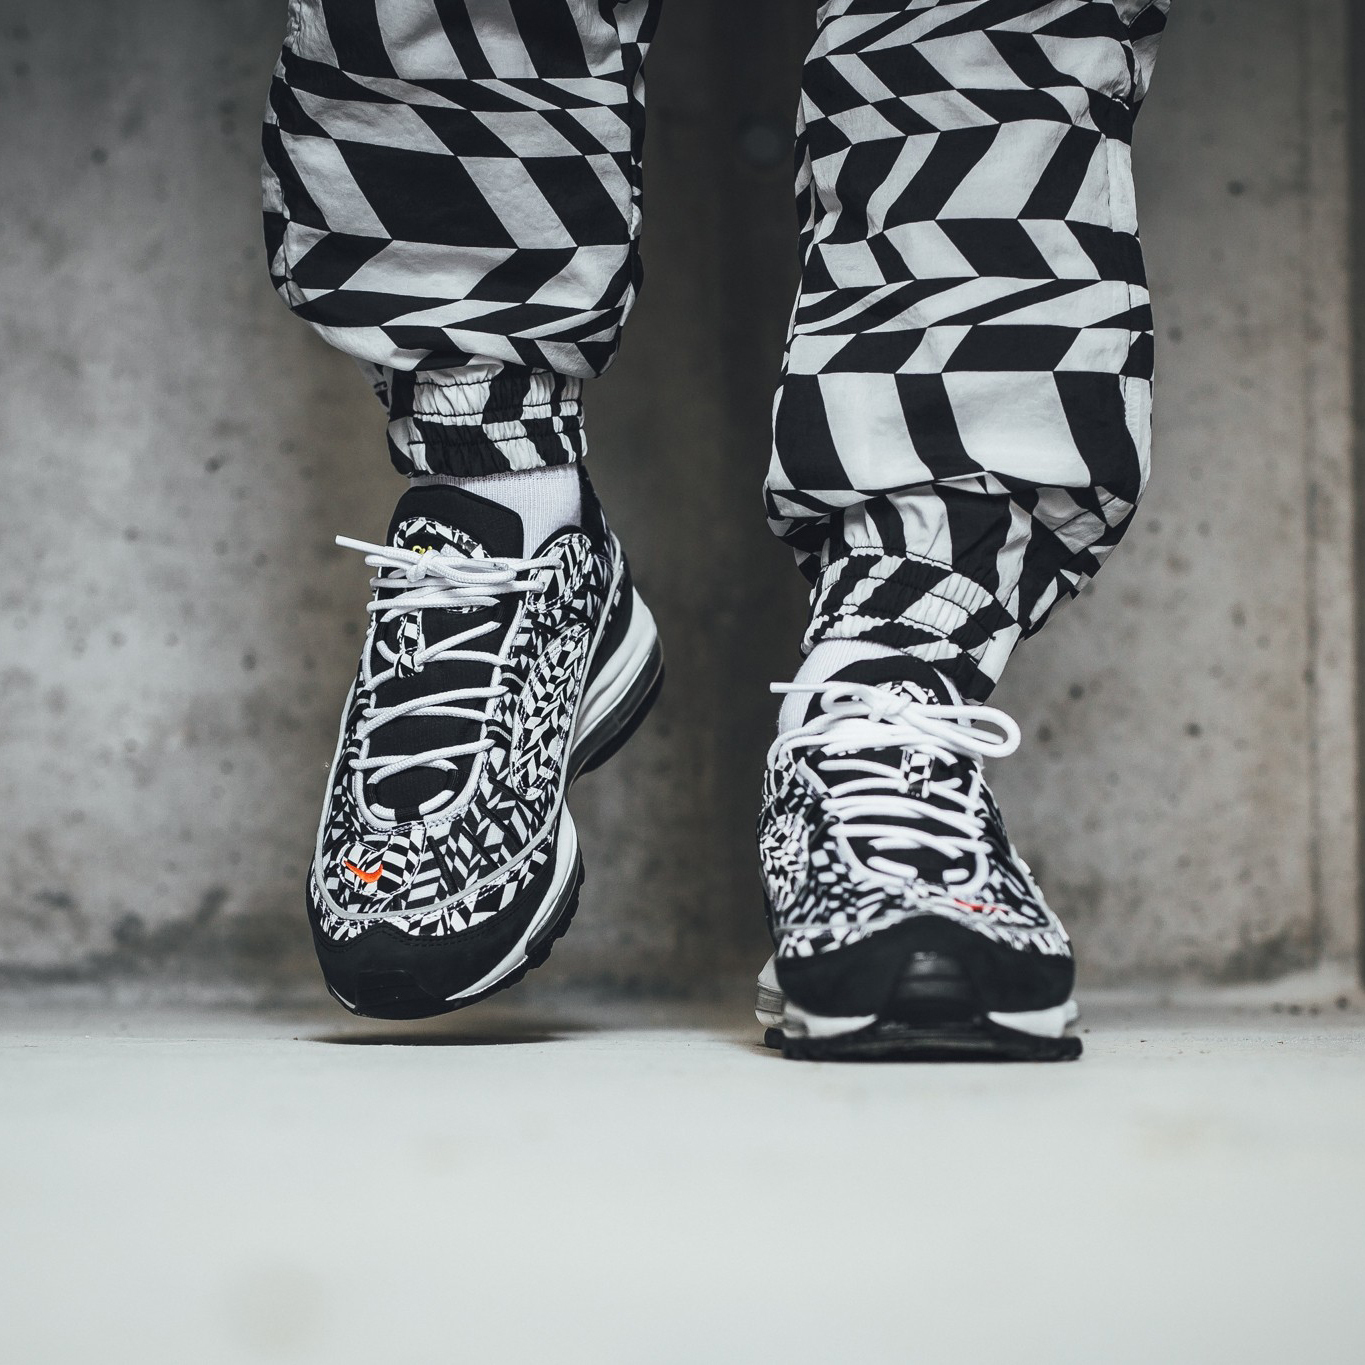 Nike Air Max 98 All Over Print (Zebra Camo and 50 similar items